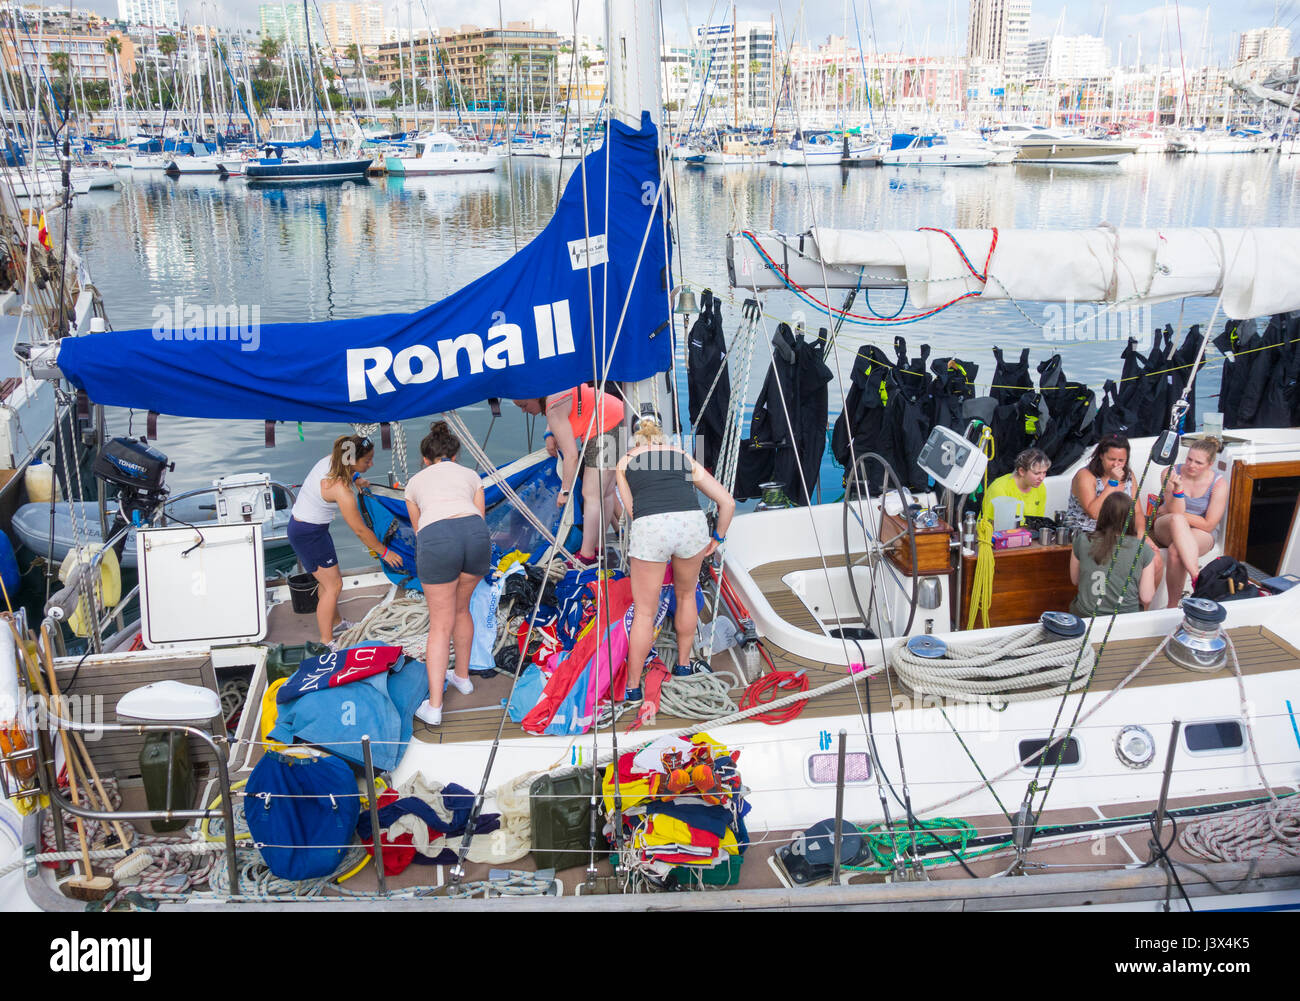 Las Palmas, Gran Canaria, Canary Islands, Spain, 8th May 2017.  Tall ships taking part in the 2017 Rendez-Vous Tall - Stock Image